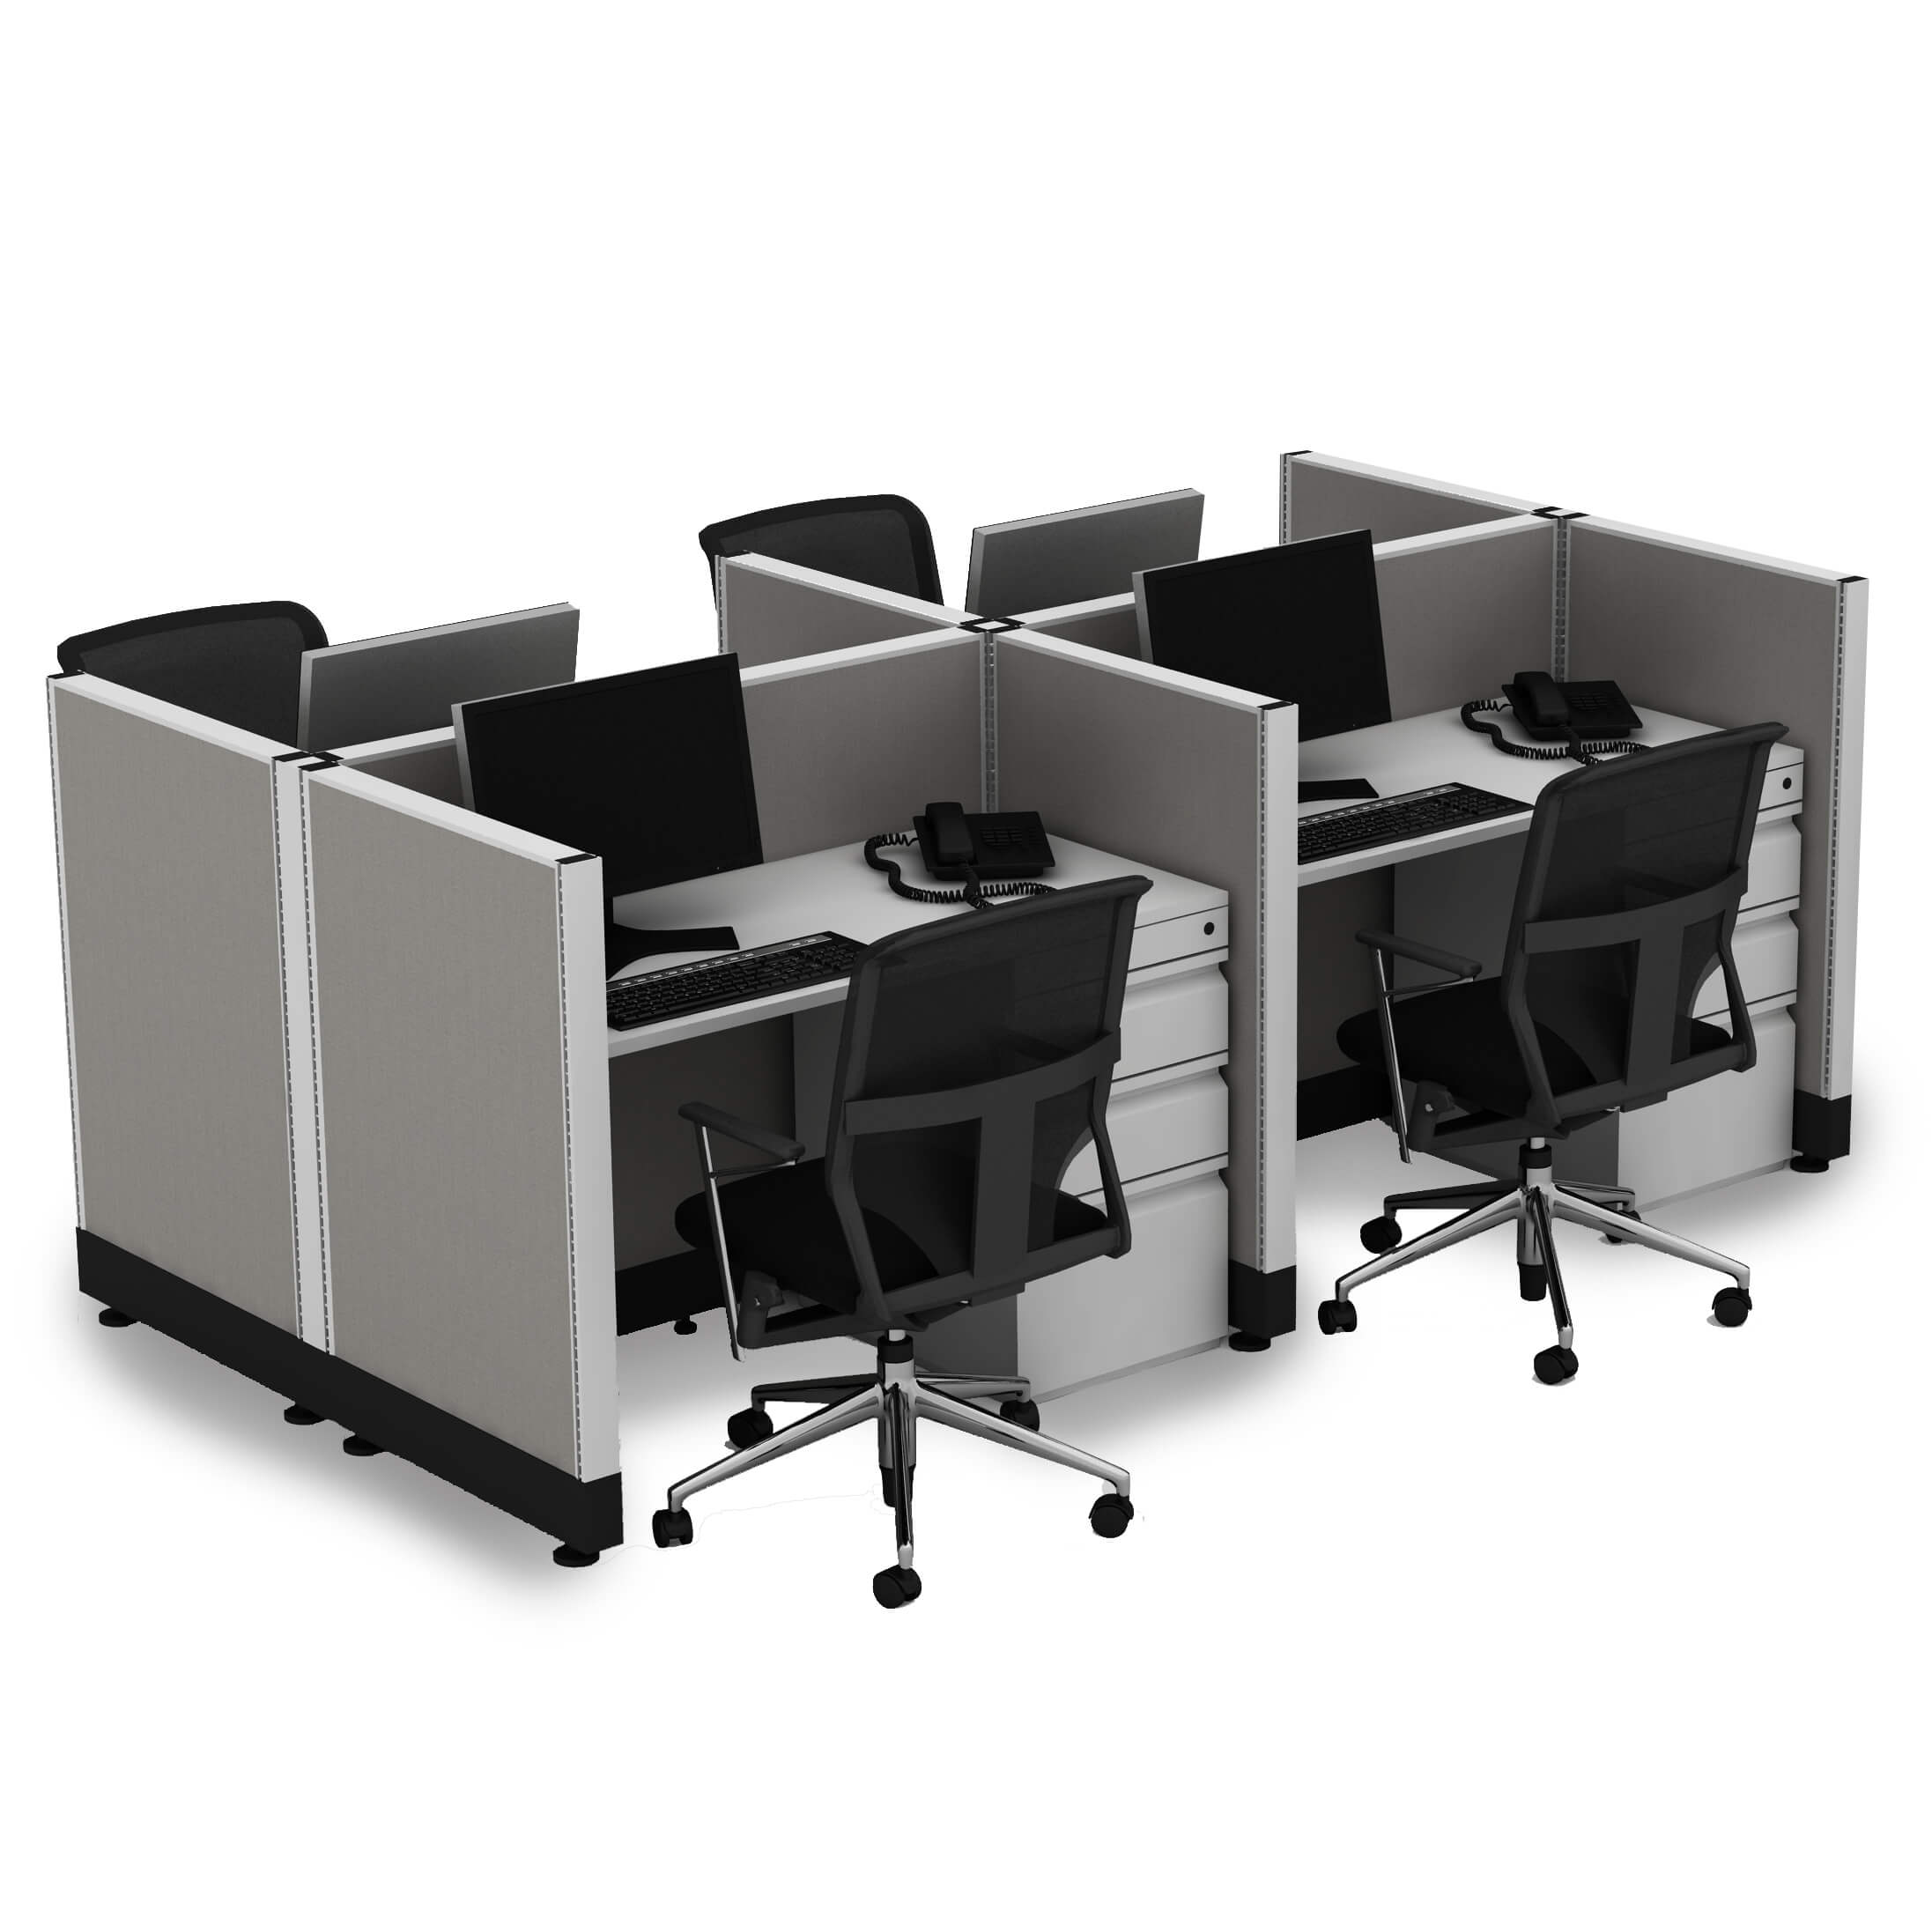 hot-desking-hotel-desk-4-pack-powered.jpg